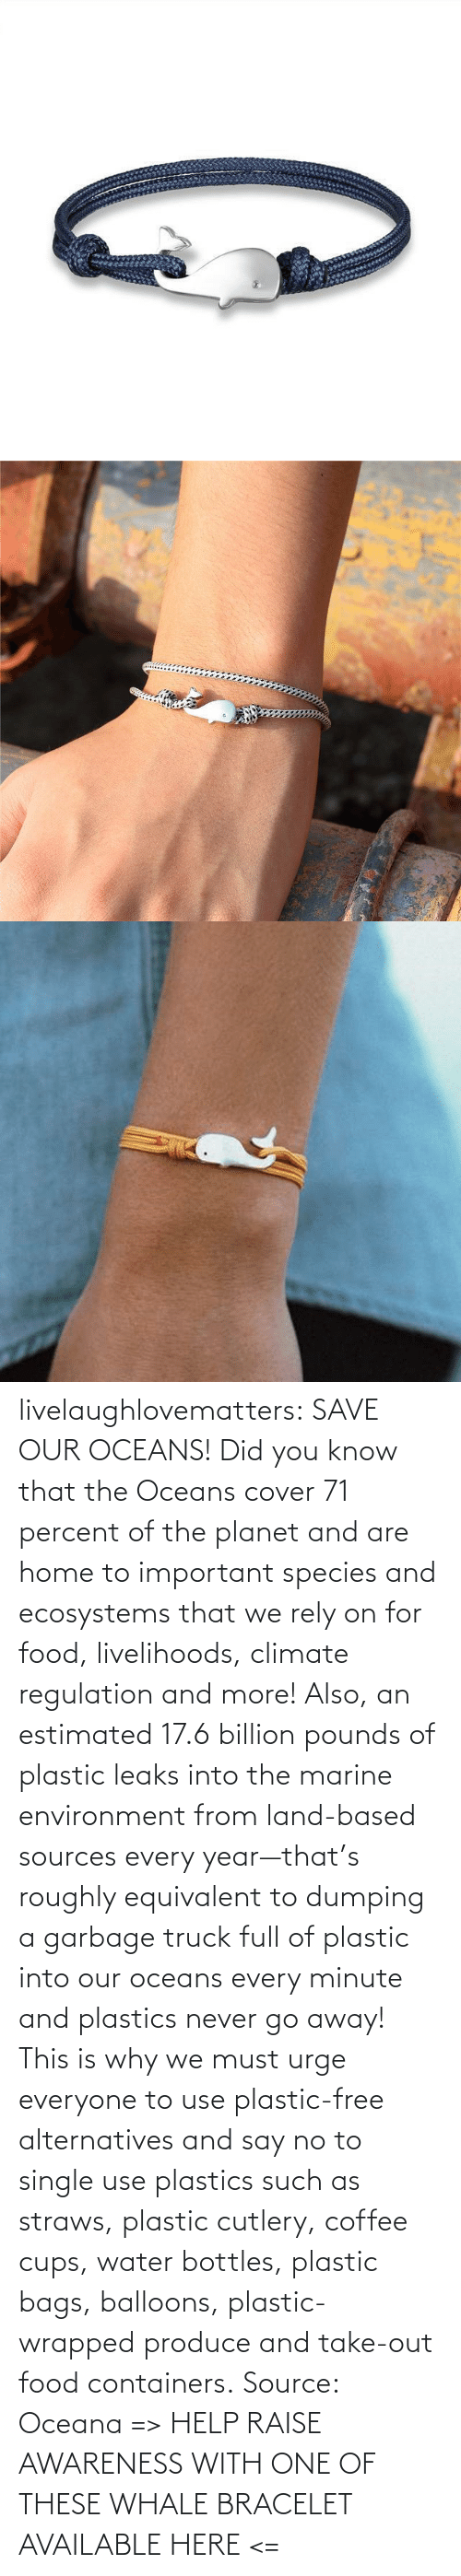 use: livelaughlovematters: SAVE OUR OCEANS!  Did you know that the Oceans cover 71 percent of the planet and are home to important species and ecosystems that we rely on for food, livelihoods, climate regulation and more! Also, an estimated 17.6 billion pounds of plastic leaks into the marine environment from land-based sources every year—that's roughly equivalent to dumping a garbage truck full of plastic into our oceans every minute and plastics never go away! This is why we must urge everyone to use plastic-free alternatives and say no to single use plastics such as straws, plastic cutlery, coffee cups, water bottles, plastic bags, balloons, plastic-wrapped produce and take-out food containers. Source: Oceana => HELP RAISE AWARENESS WITH ONE OF THESE WHALE BRACELET AVAILABLE HERE <=